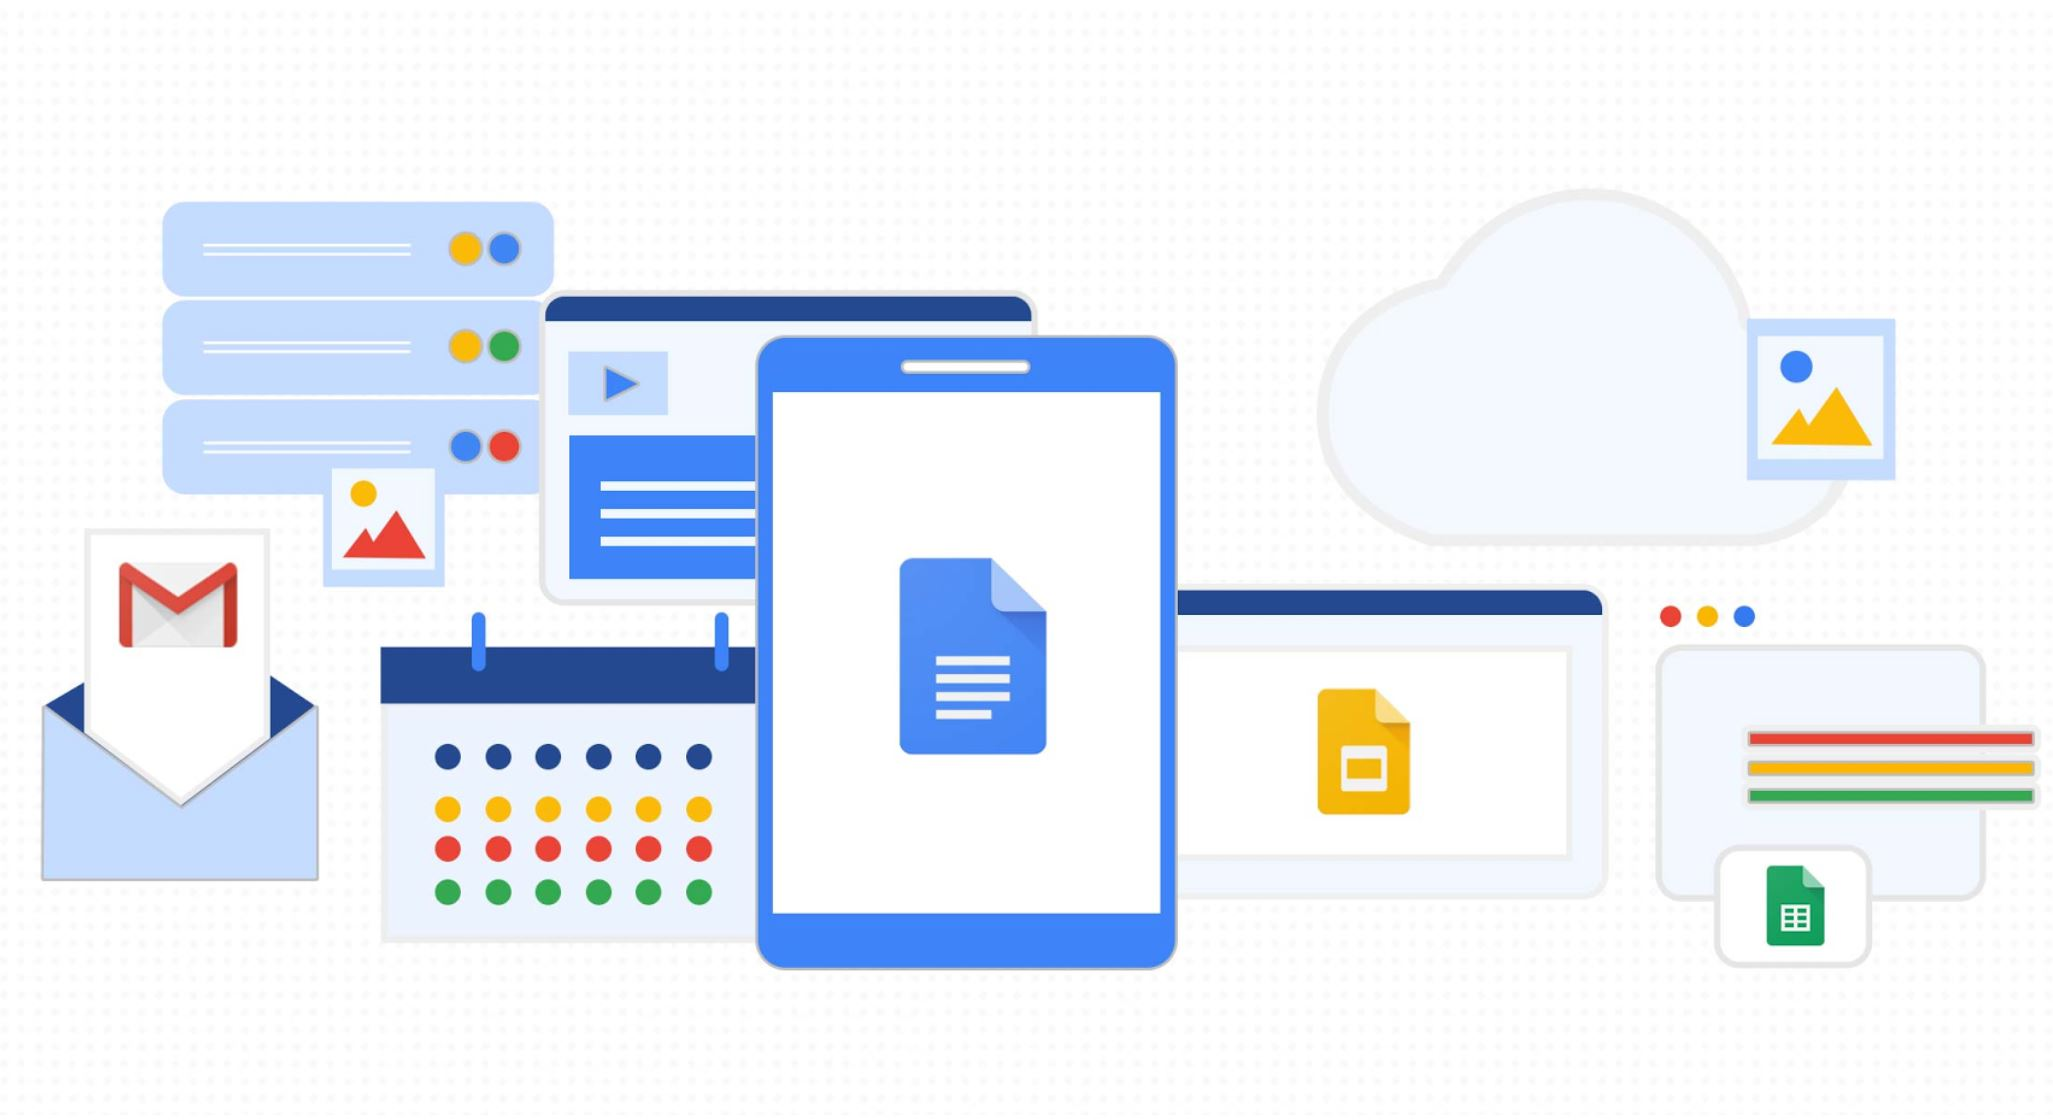 Google Docs, Sheets and Slides just got some new features on mobile